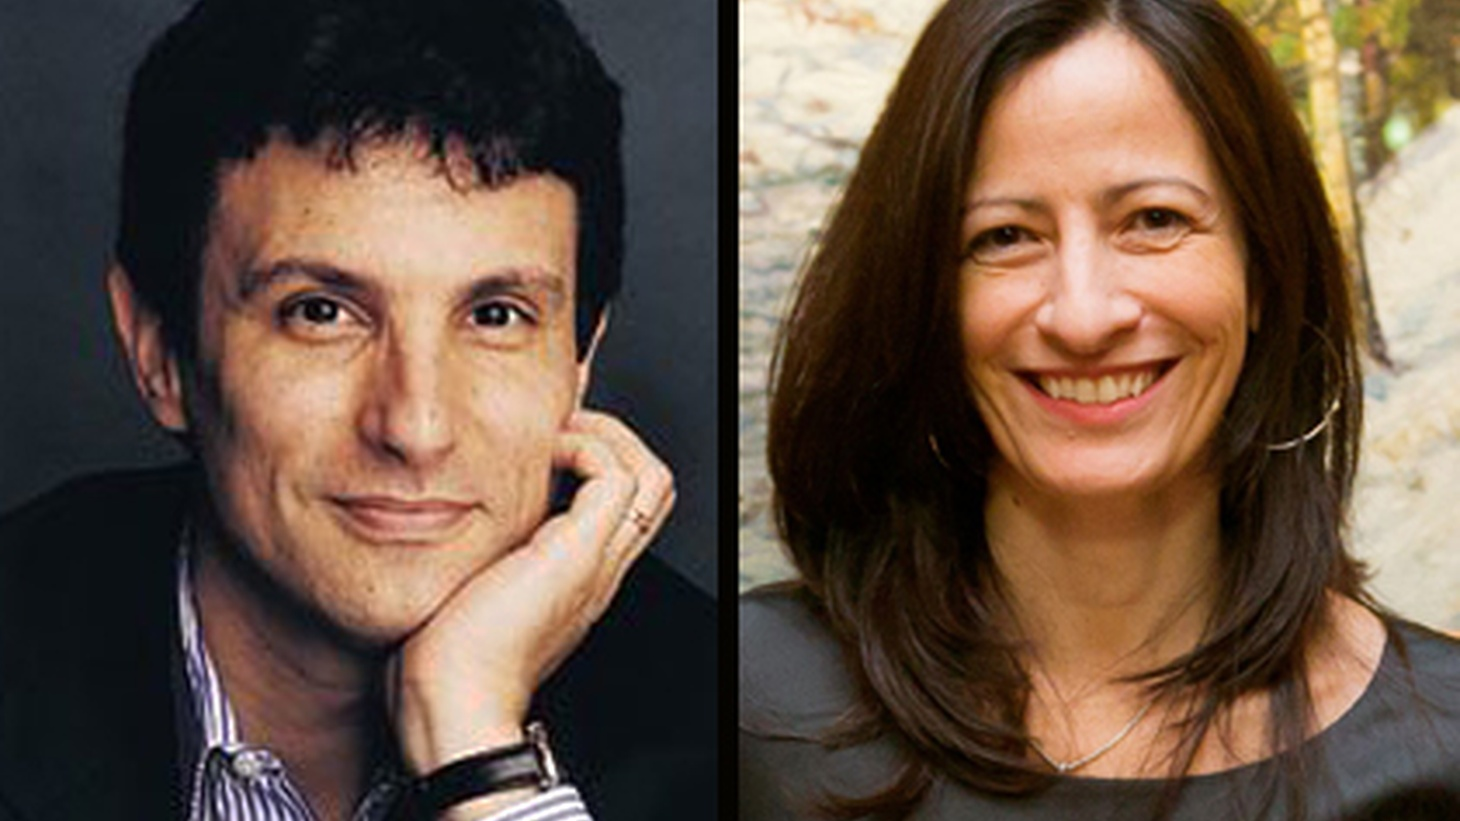 David Remnick and Deborah Treisman, editor and fiction editor, take us through the fiction at the New Yorker and how it has changed over the years.